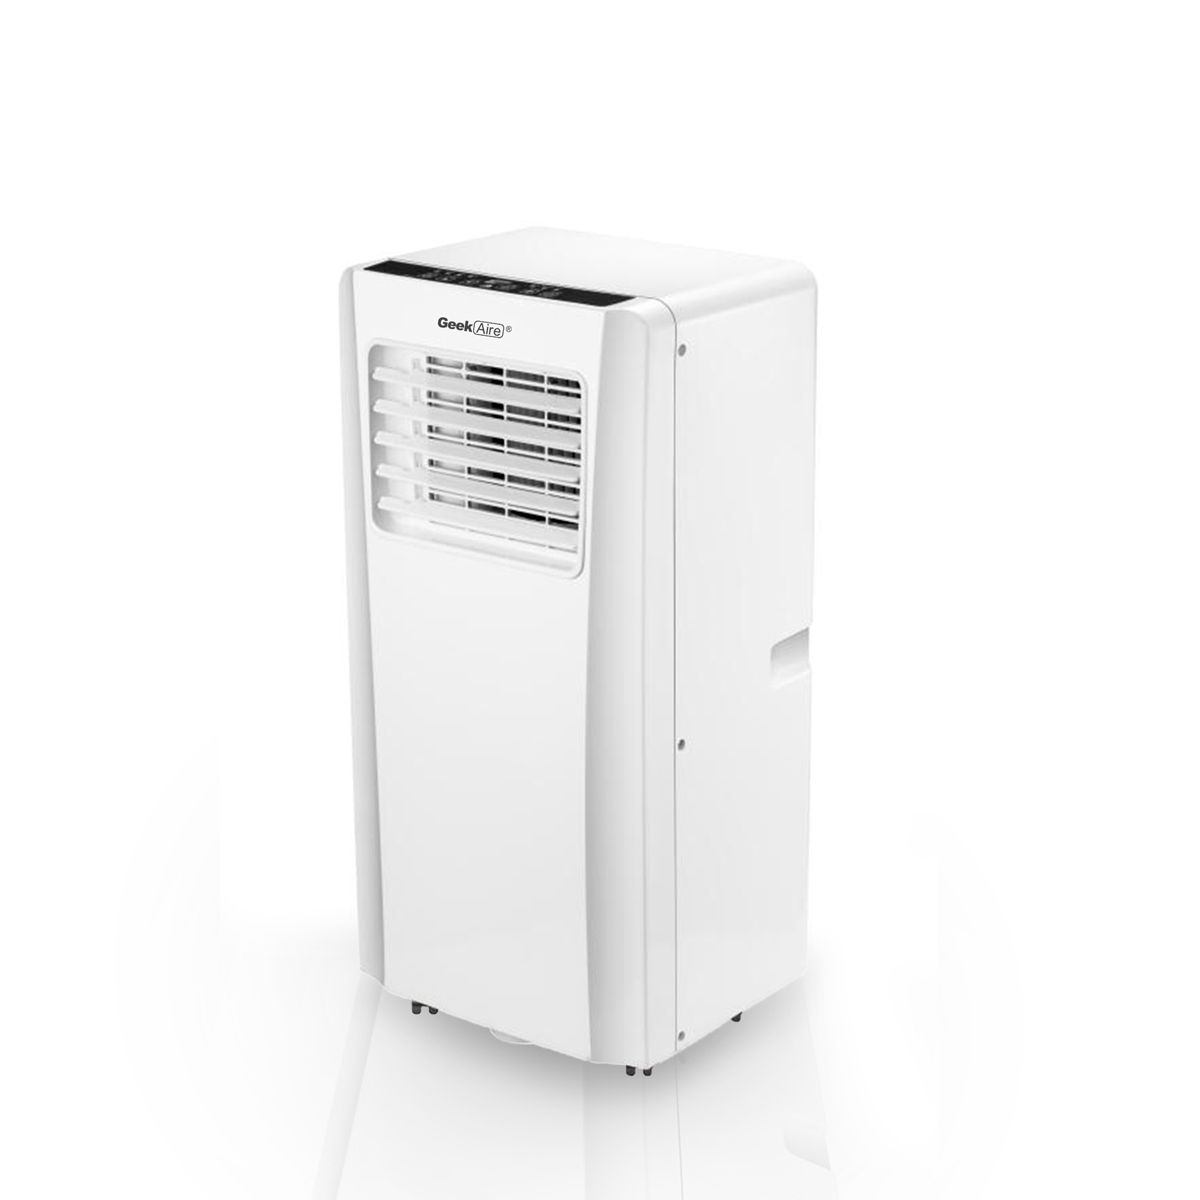 Geek Kool Portable 3-In-1 Air Conditioner (0.7 Ton)